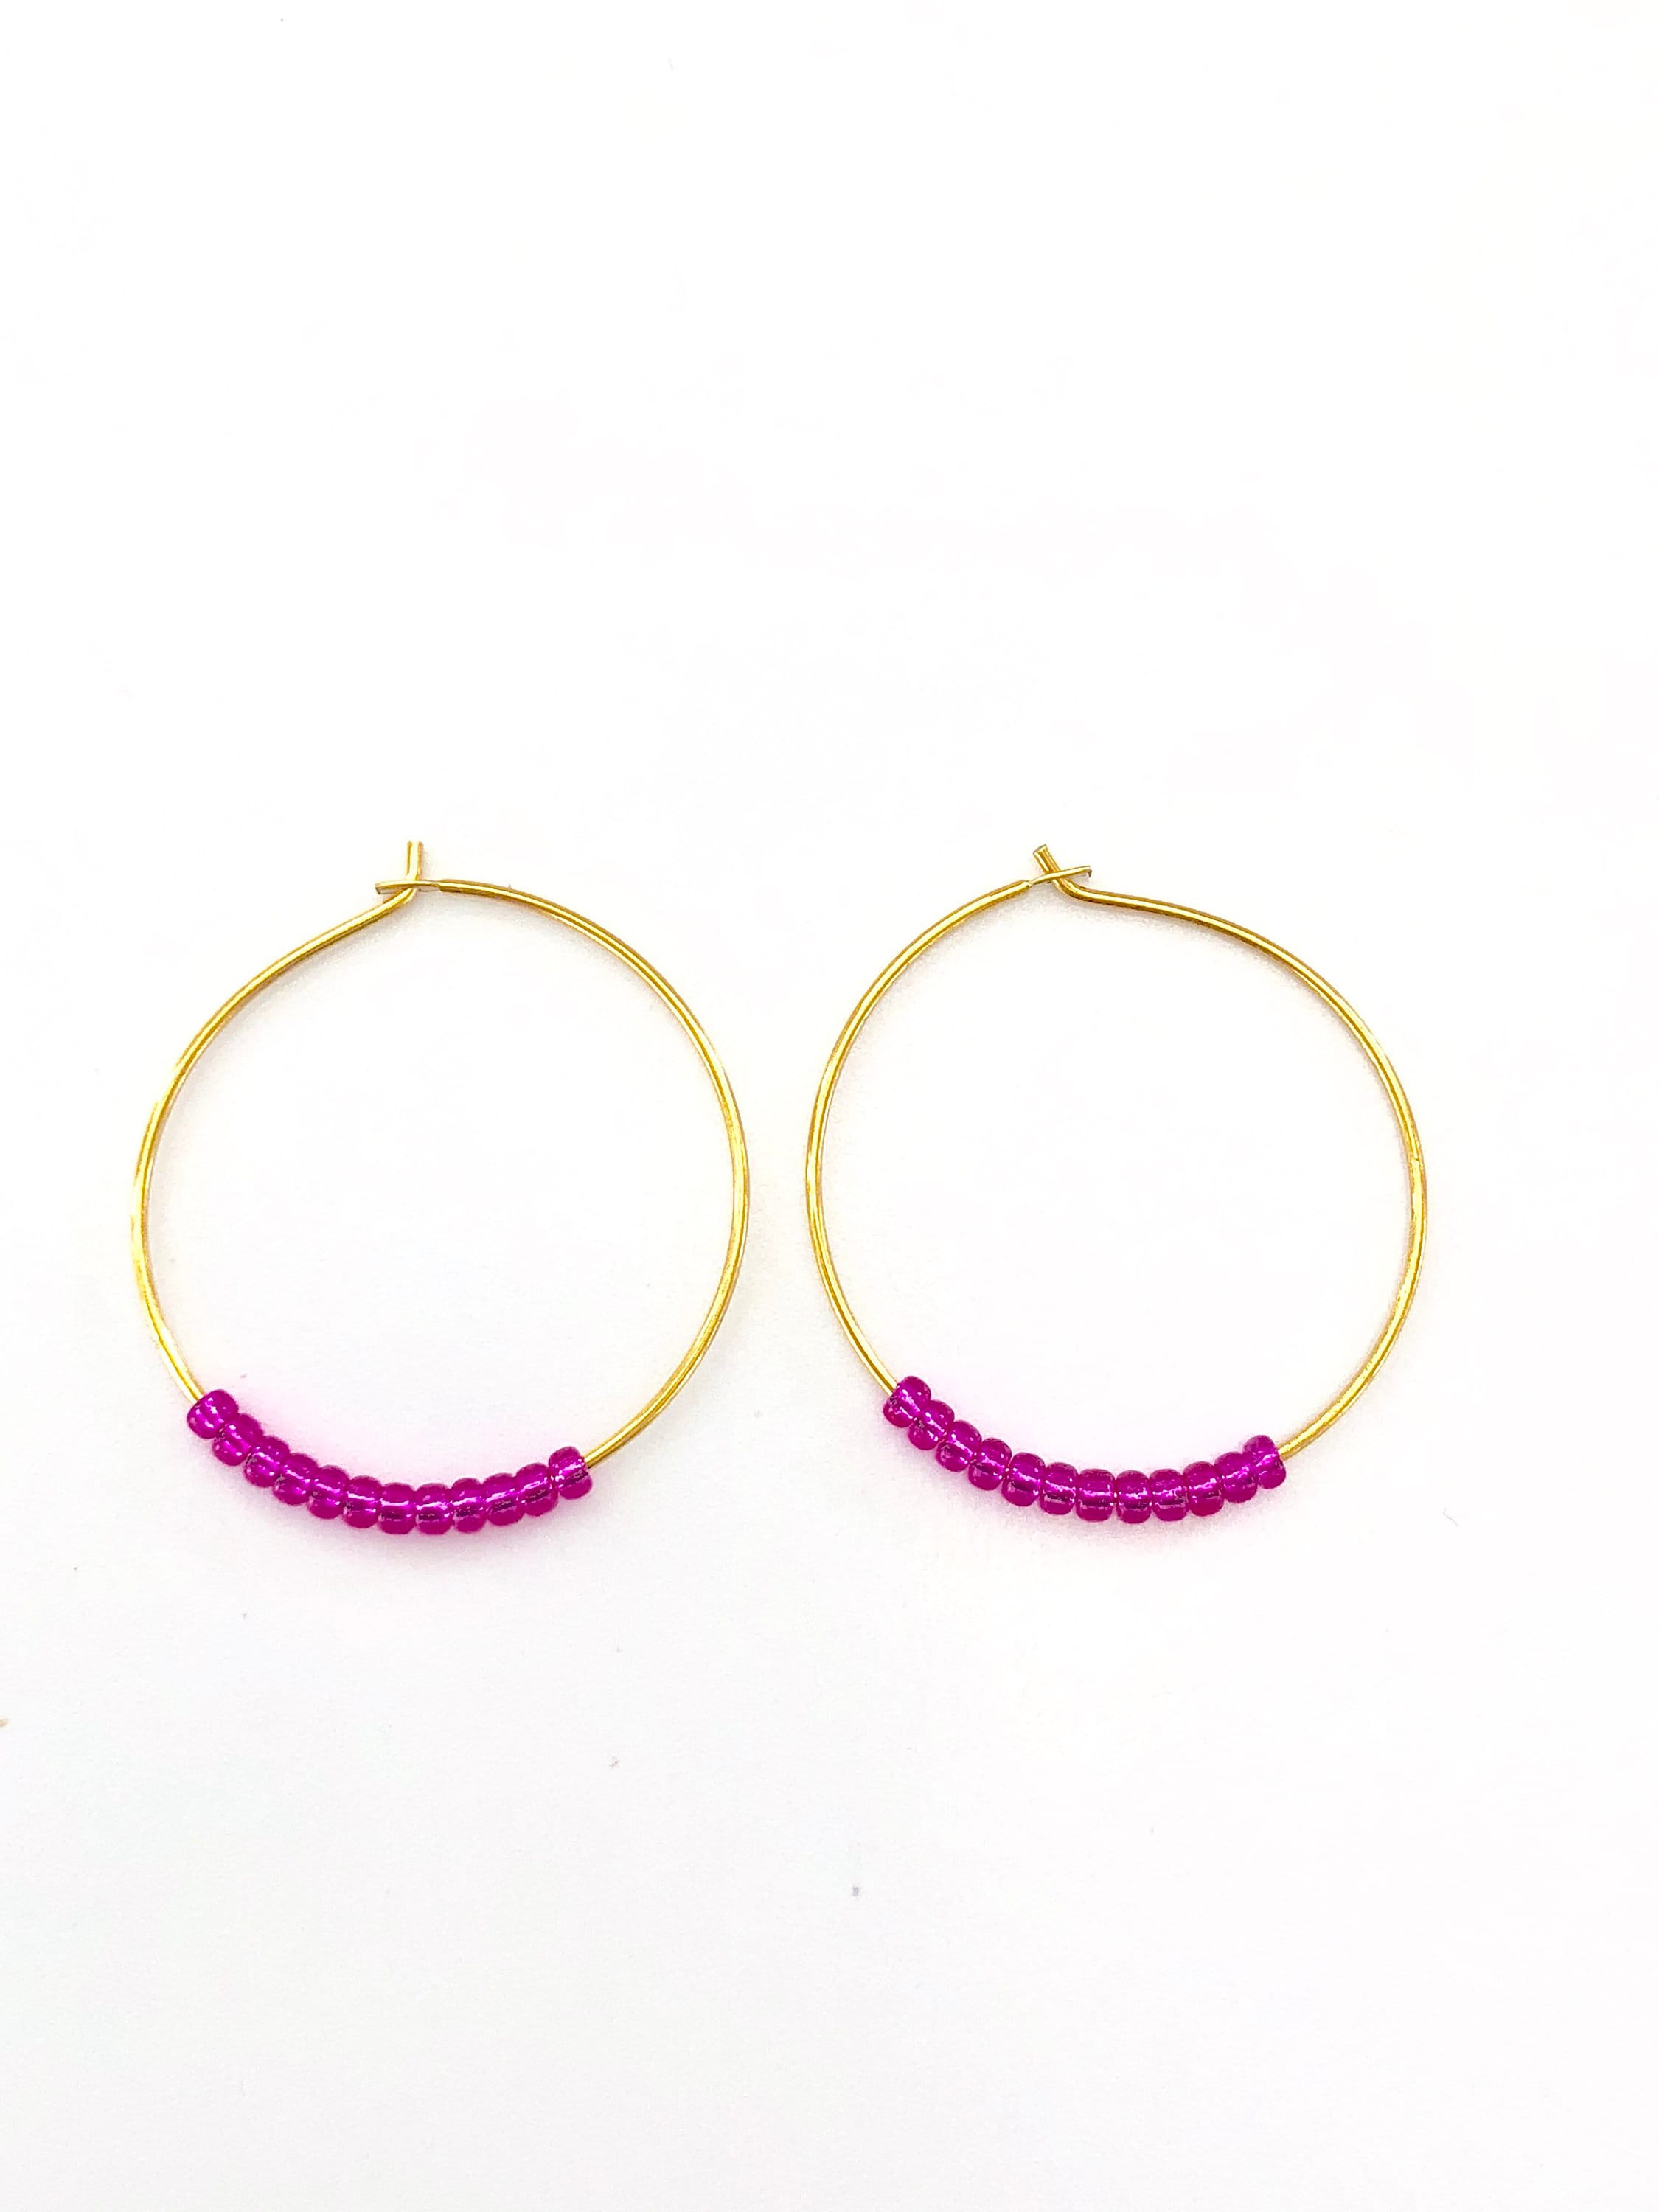 Hoop earrings gold hoop earrings seed bead earrings